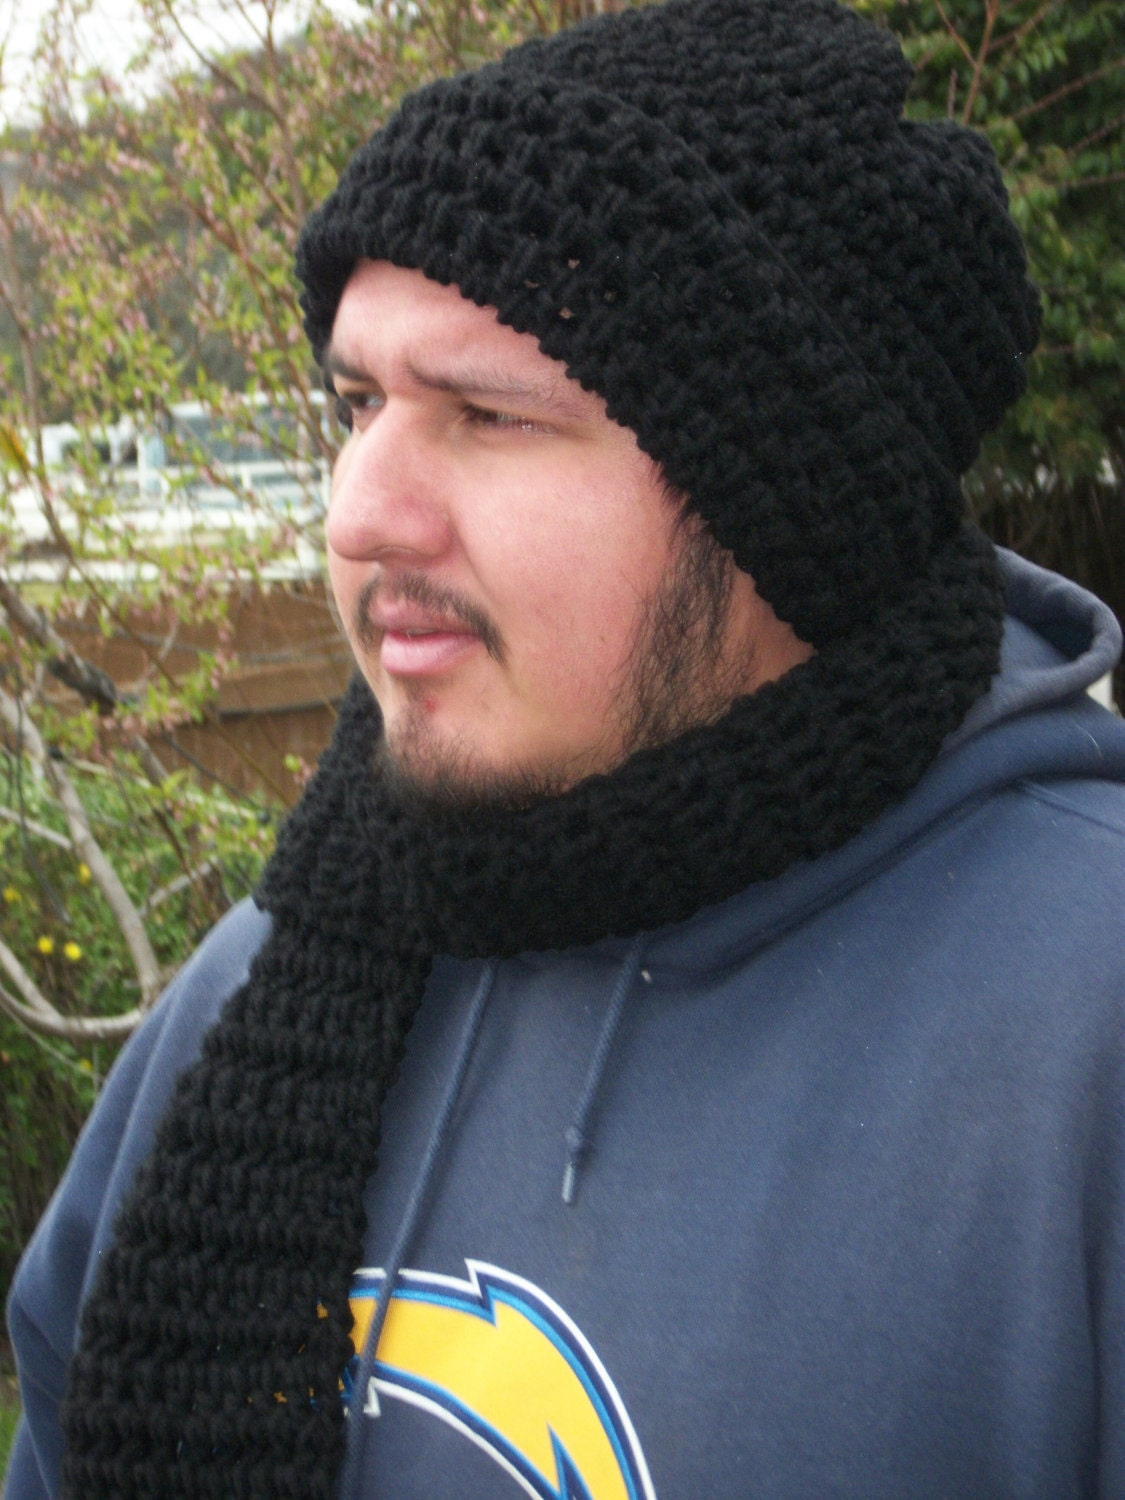 Mens Crochet Hat & Scarf by DRCrafts on Etsy Crochet Scarves And Hats